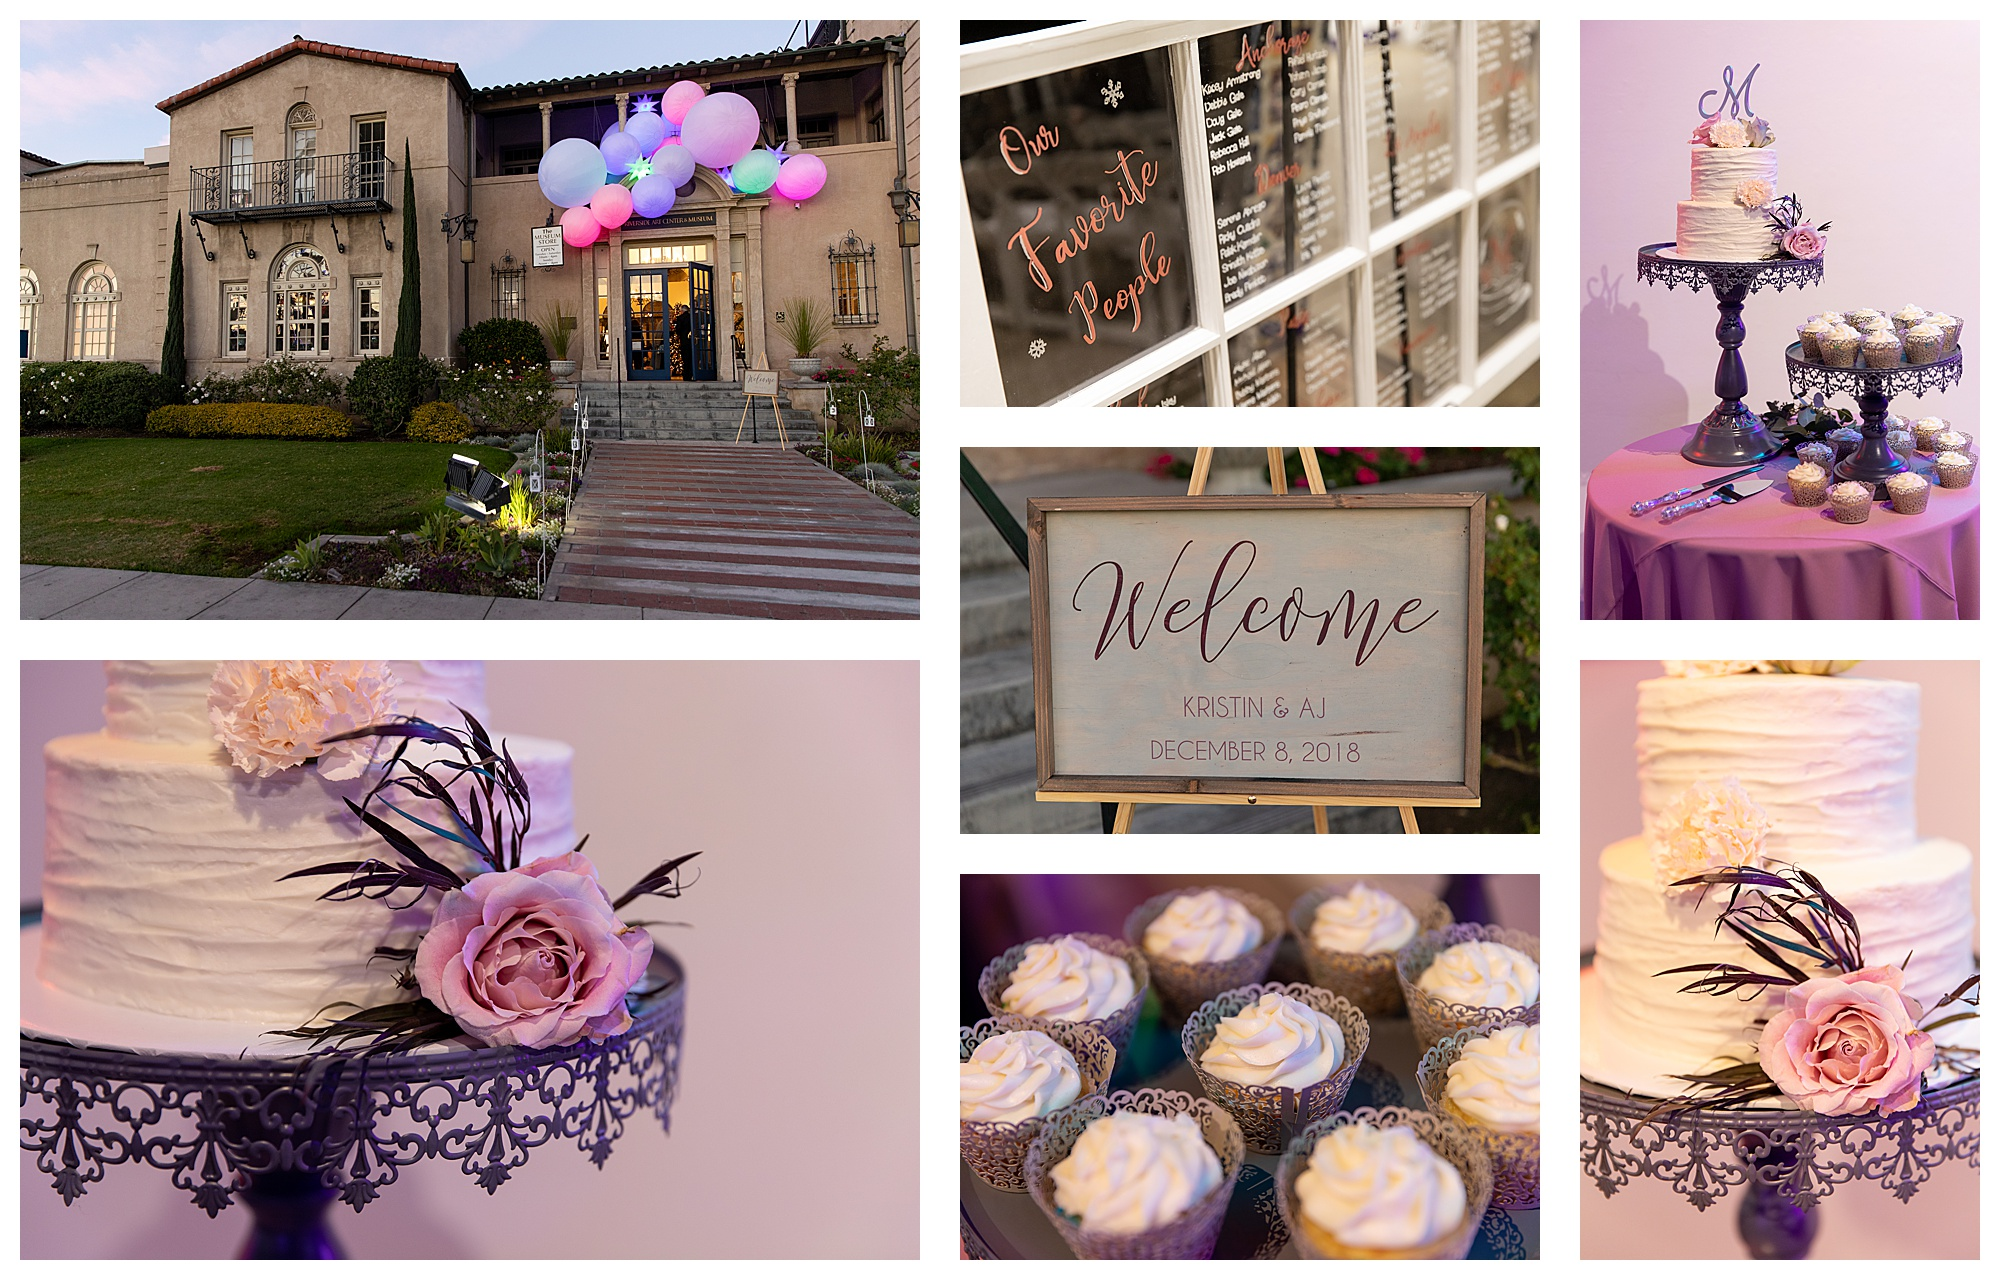 Wedding Photos Winter Wedding Riverside California